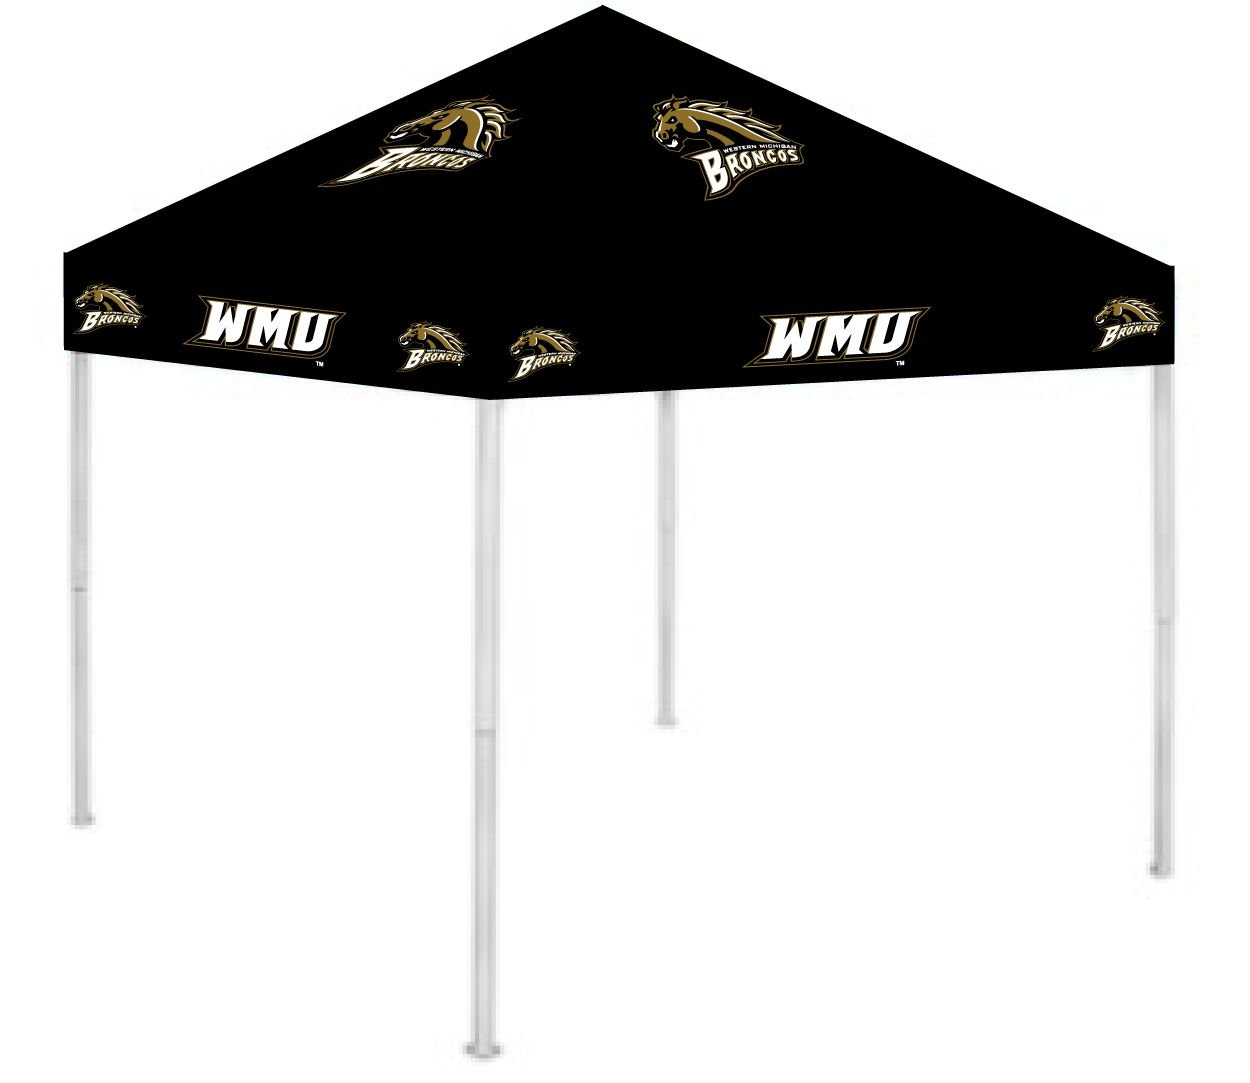 Rivalry RV434-5000 Western Michigan Canopy B002QWHLI4 9 x 9|Western Michigan Broncos Western Michigan Broncos 9 x 9